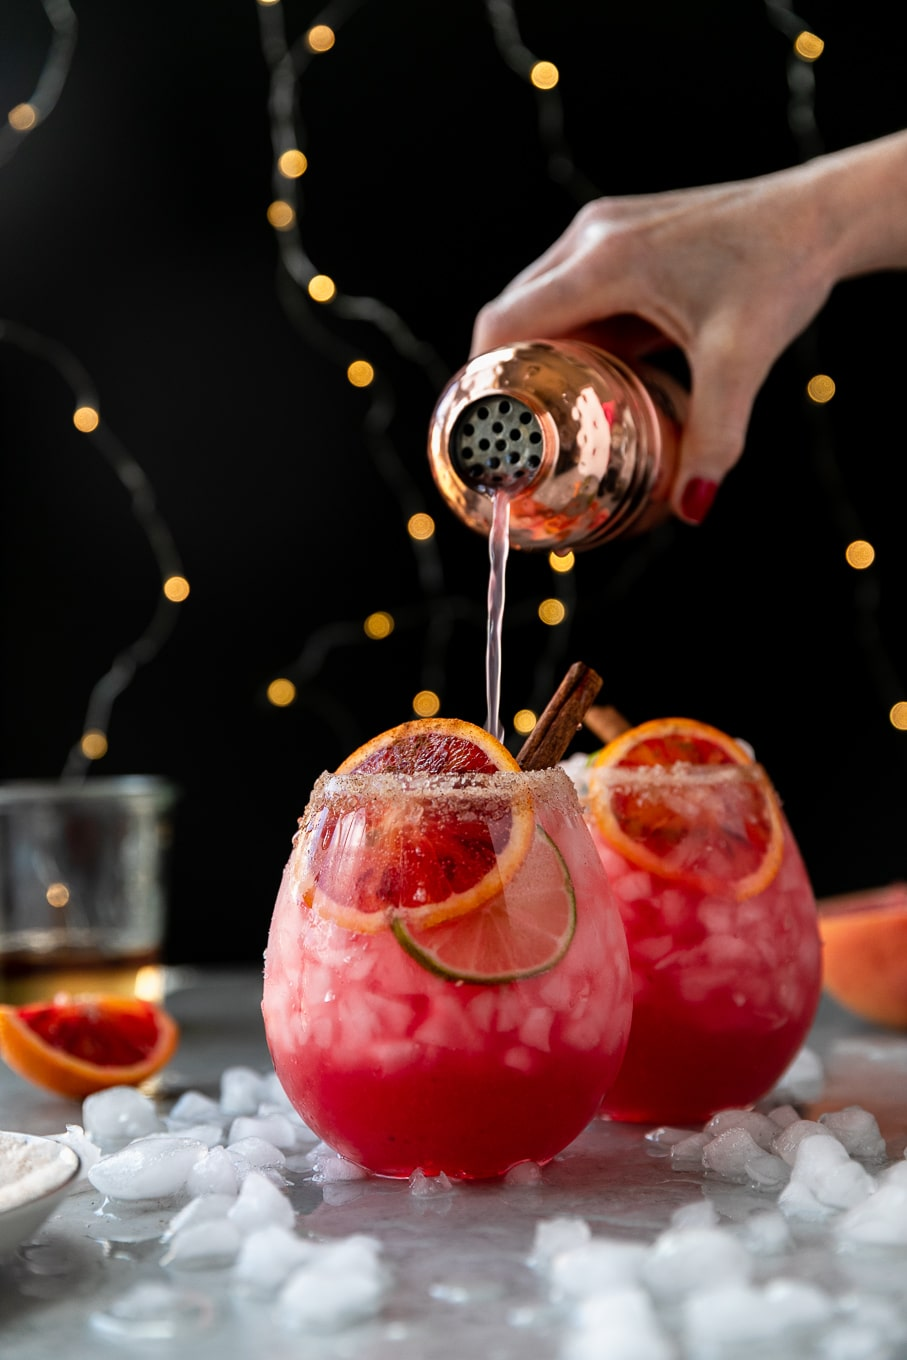 Forward facing shot of a pink blood orange cocktail and a hand pouring the drink into it from a copper cocktail shaker